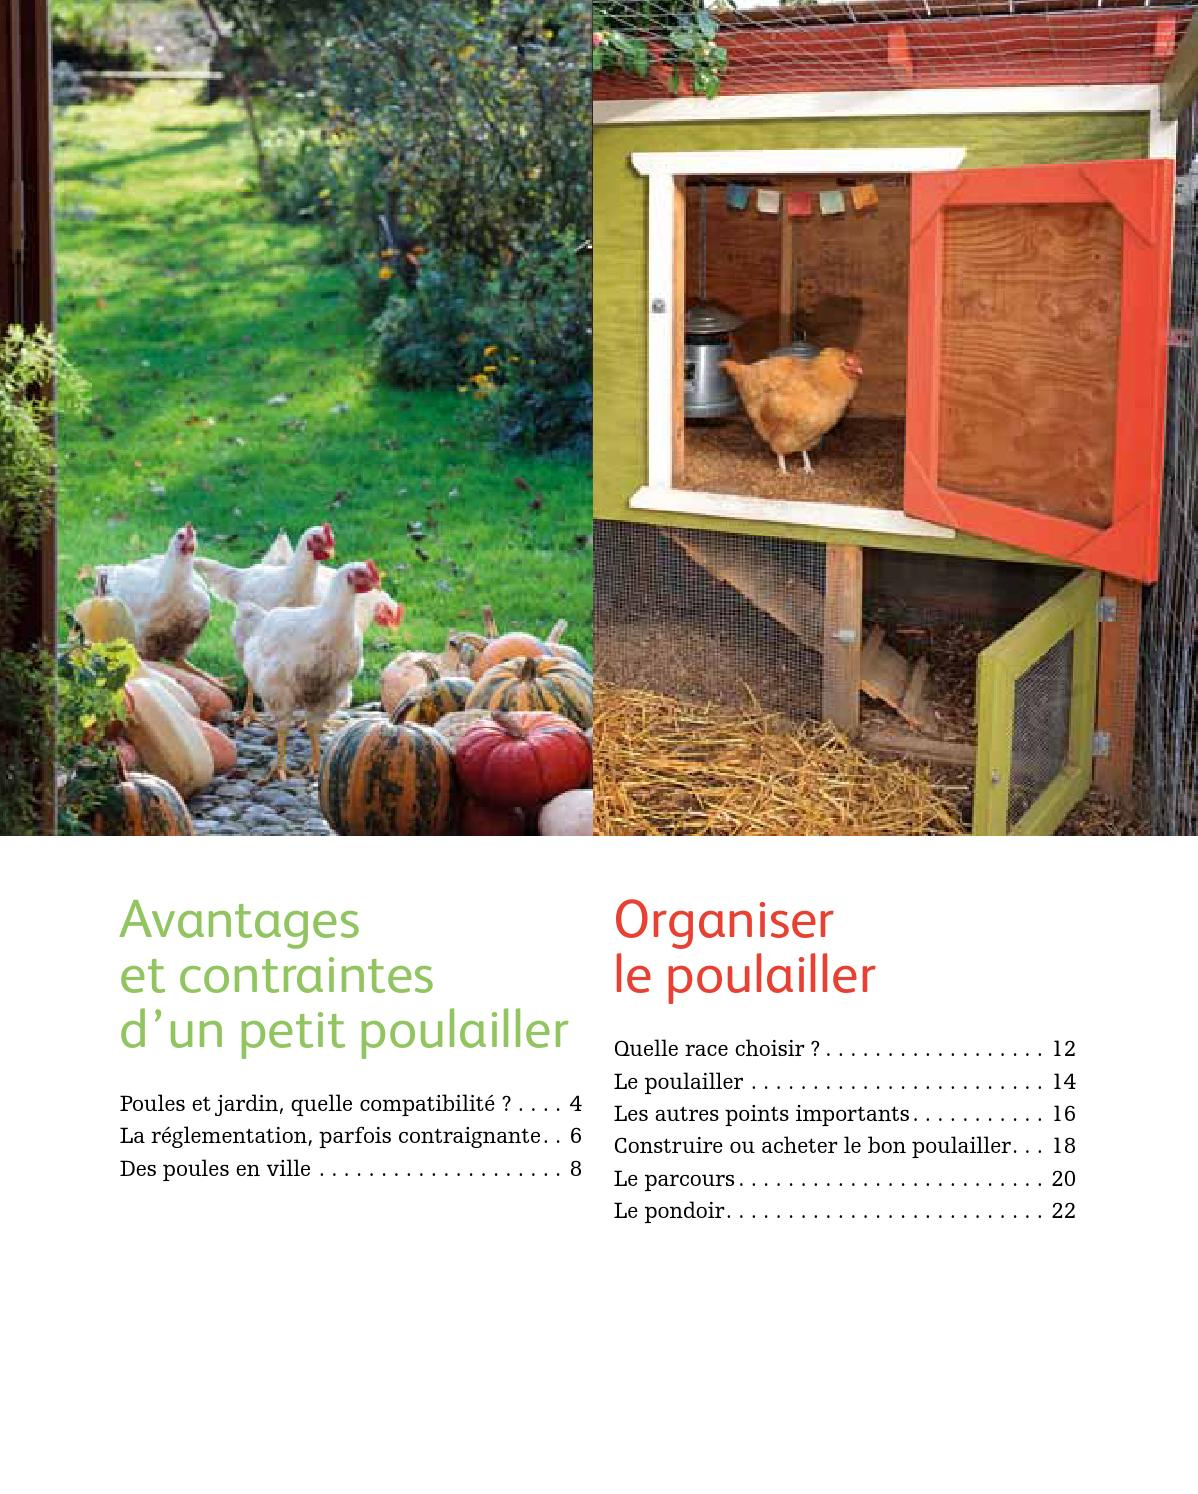 extrait quelques poules dans mon jardin ditions ulmer by ditions ulmer issuu